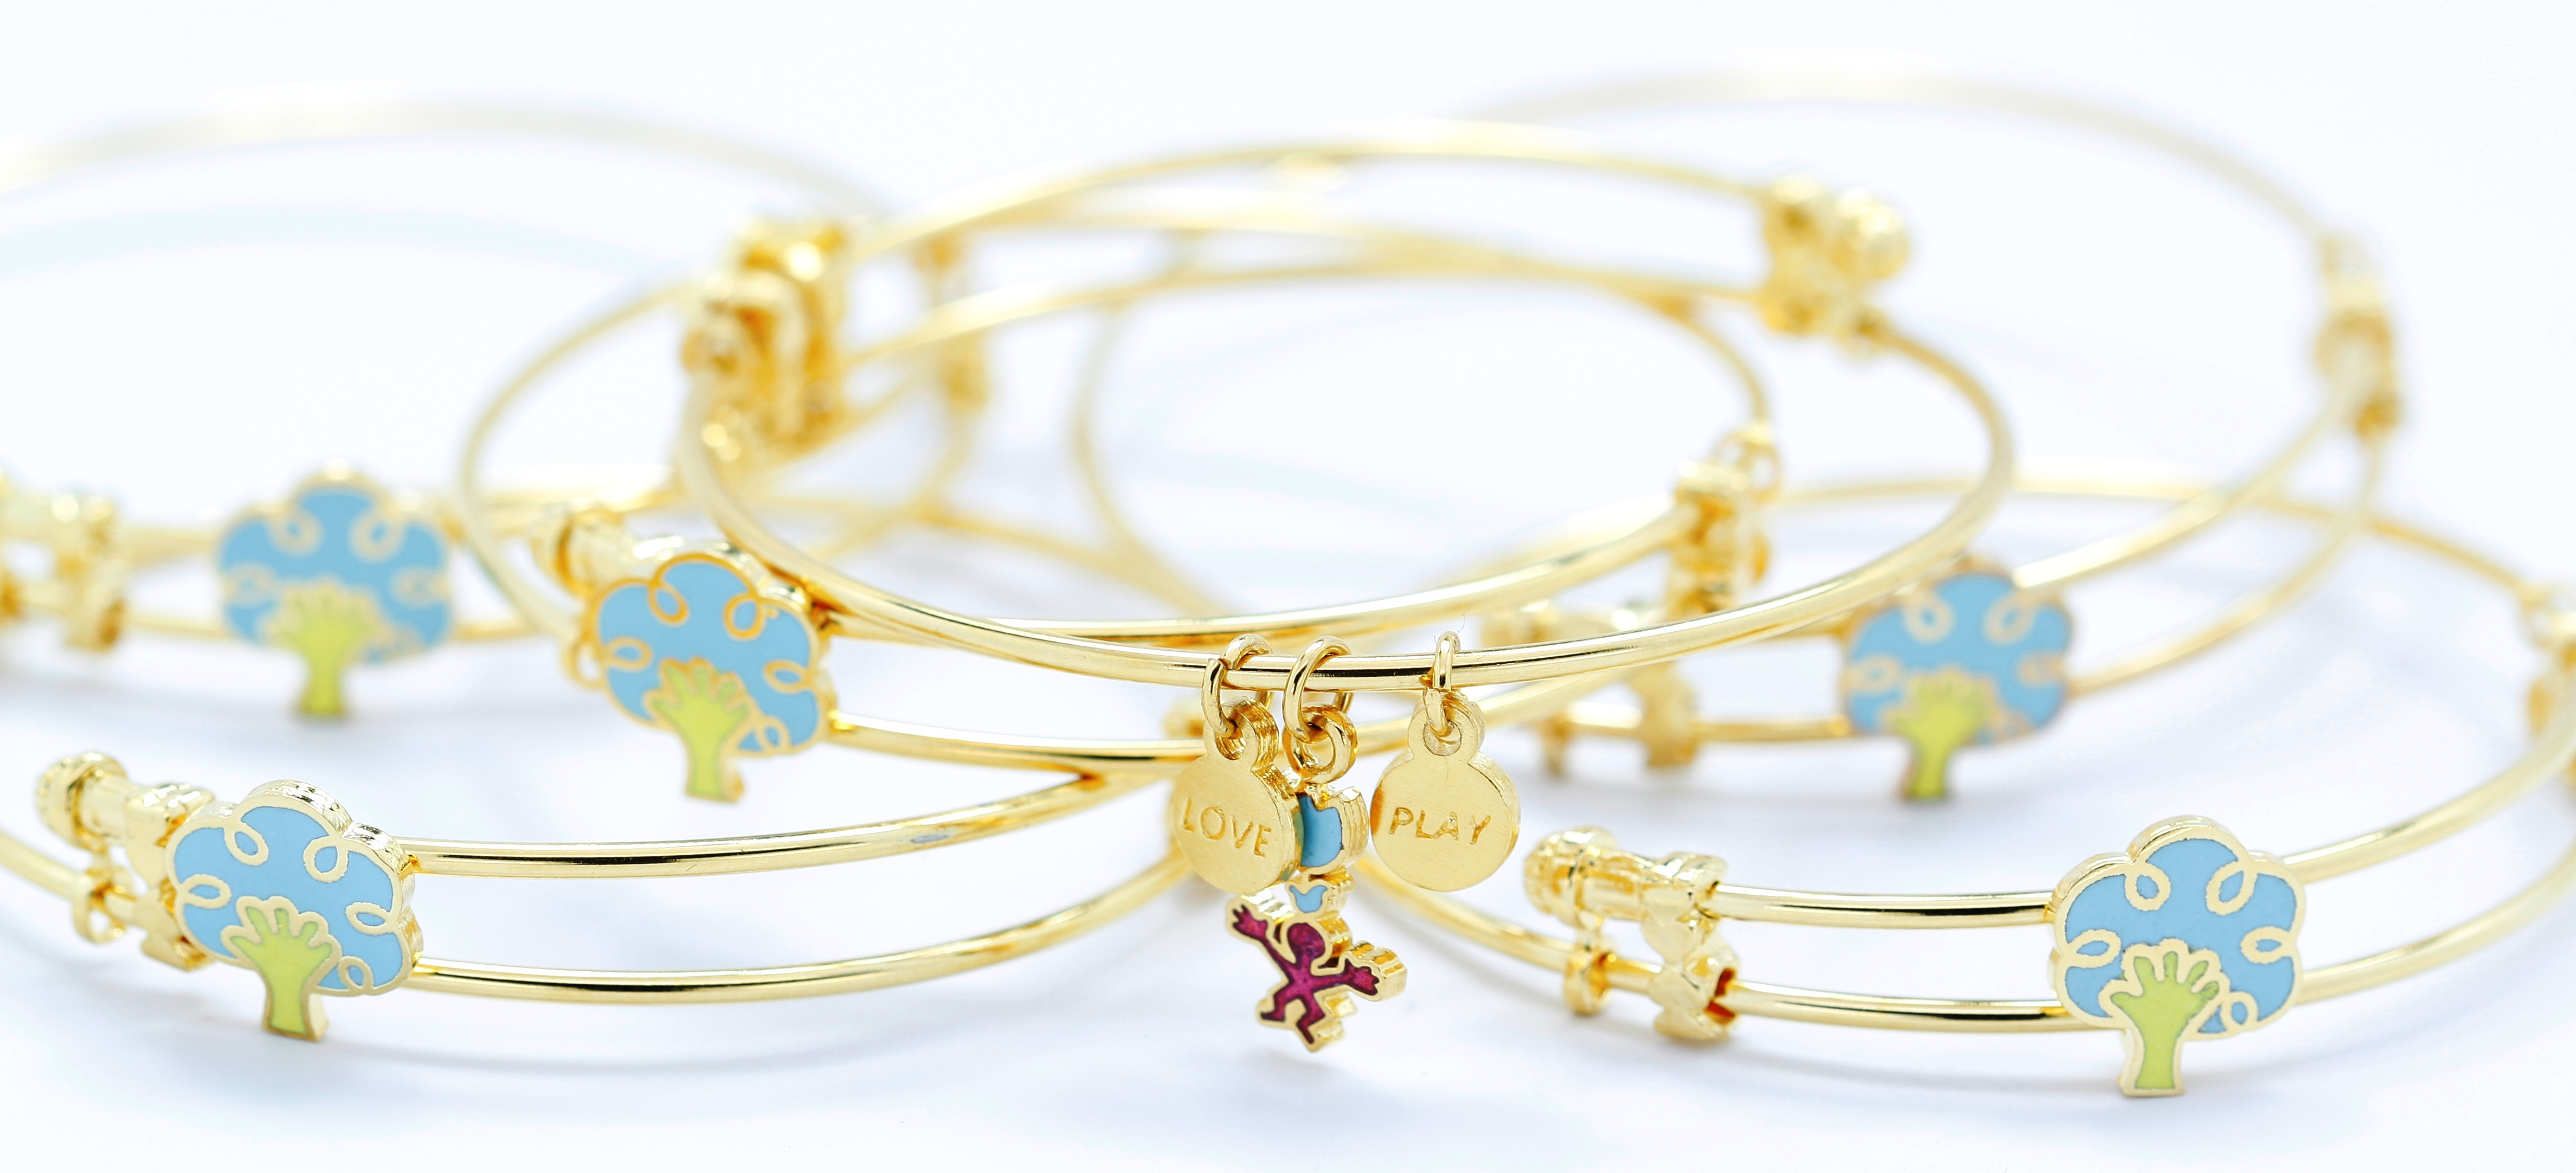 Gold Colored Bangle Bracelet And Charms